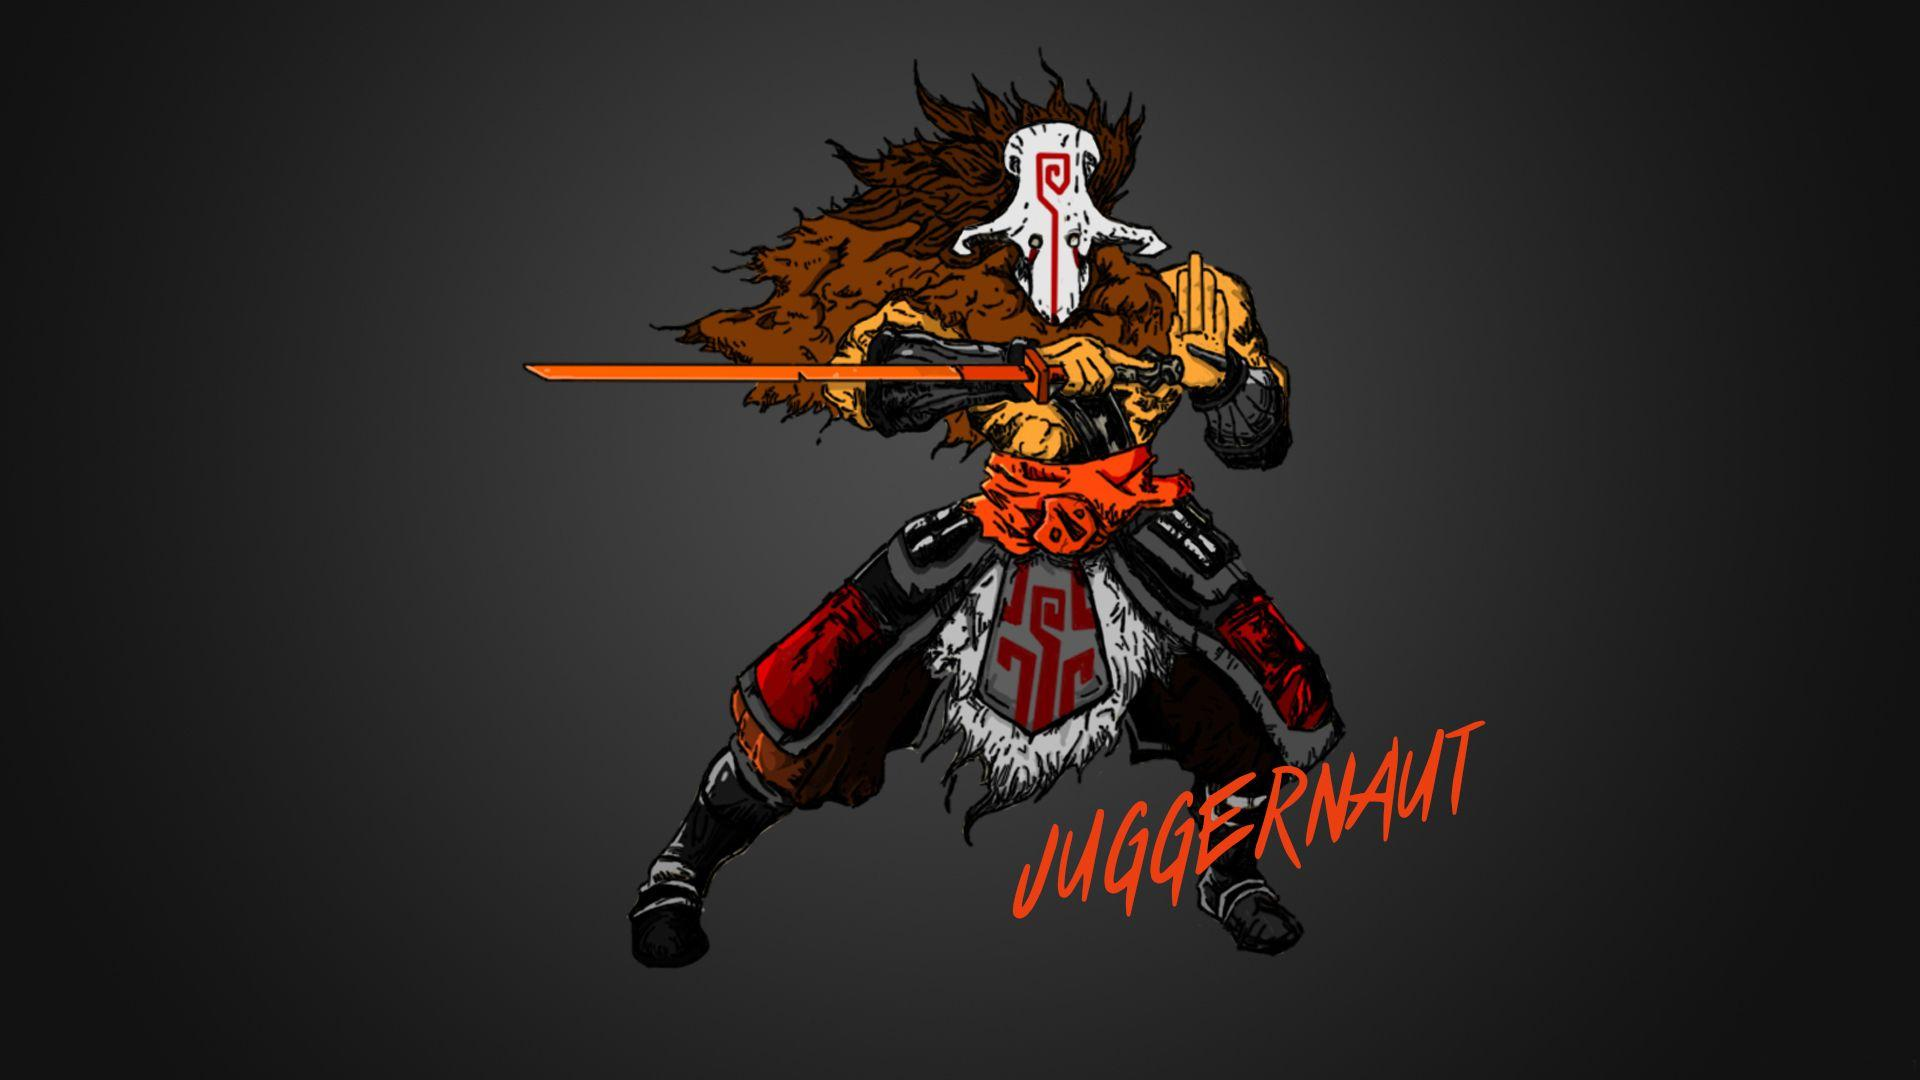 52 stocks at Juggernaut Wallpapers group